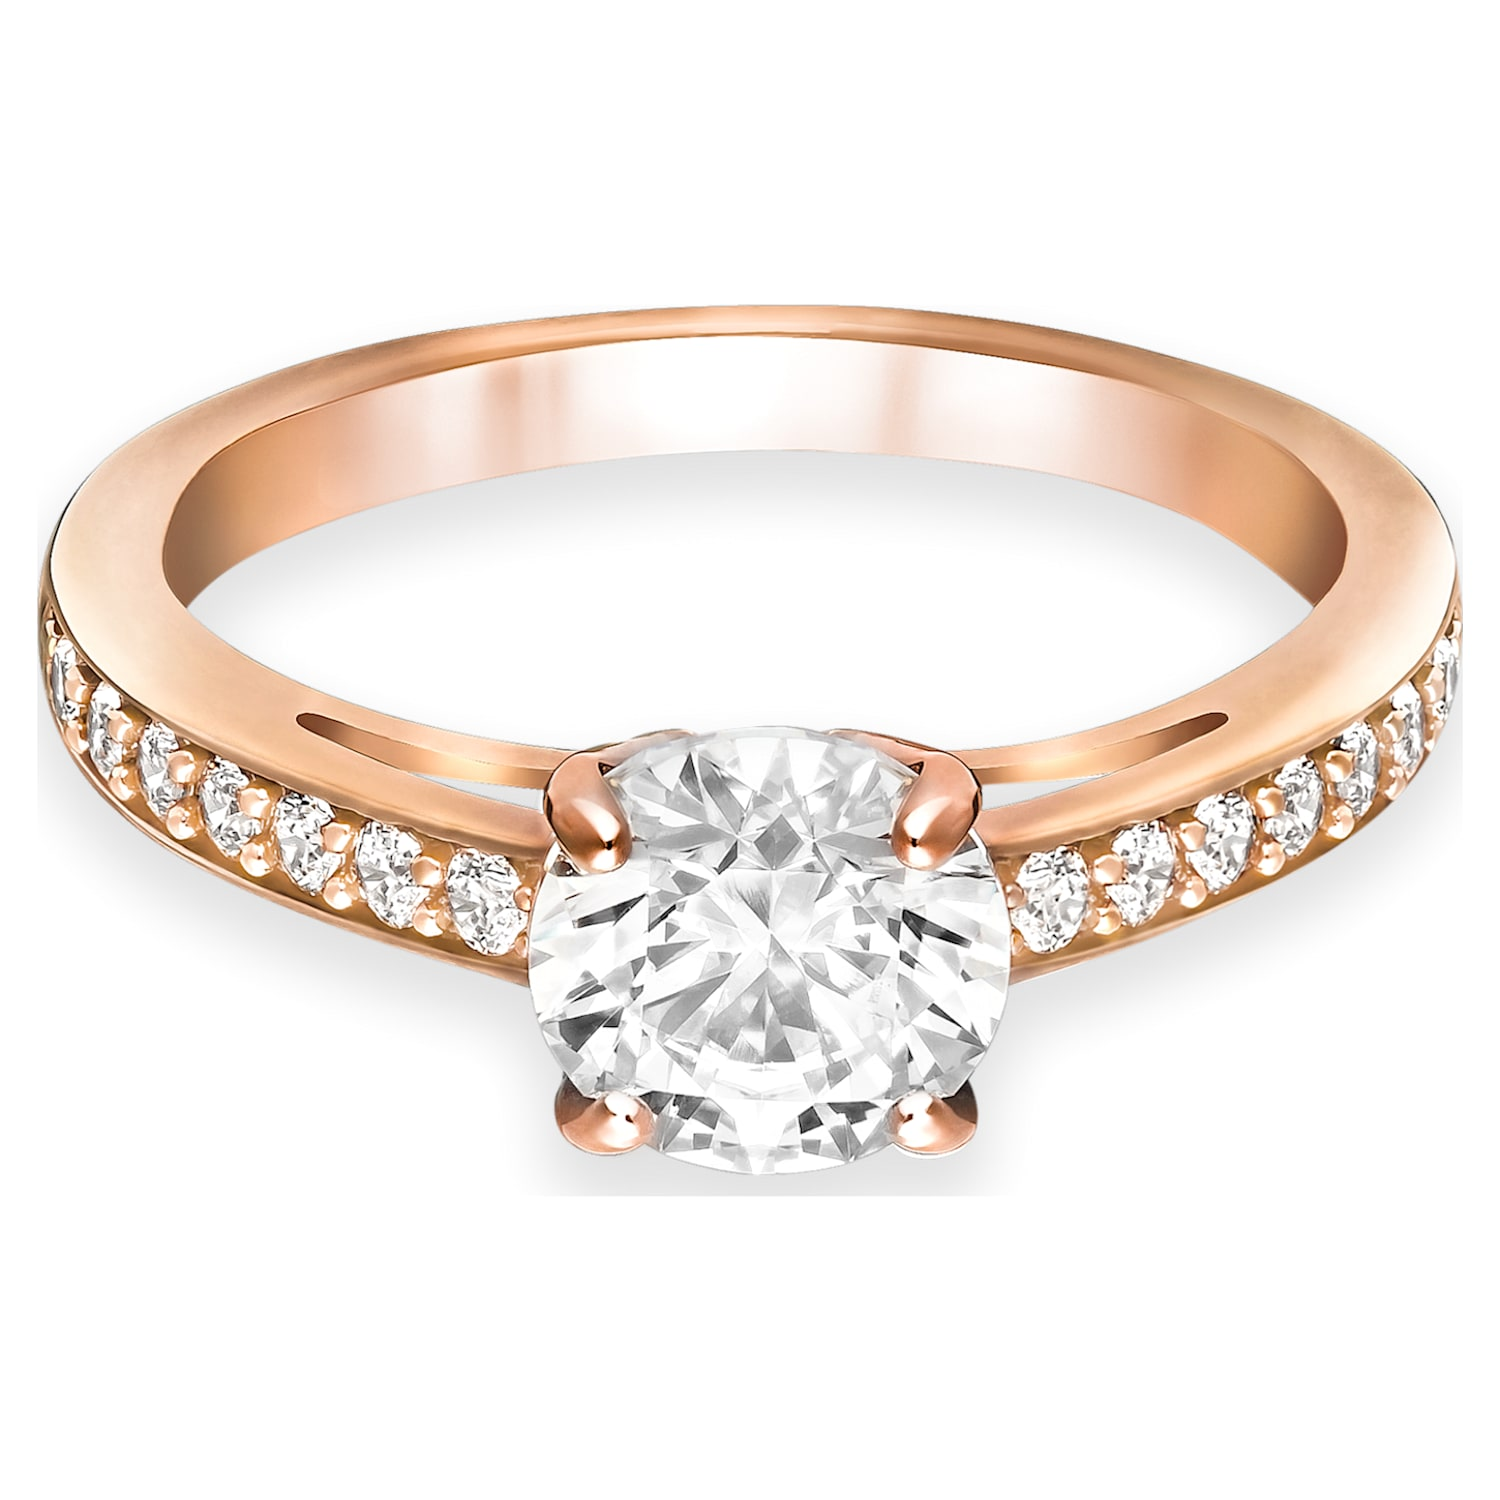 Attract ring, Round, Pavé, White, Rose-gold tone plated